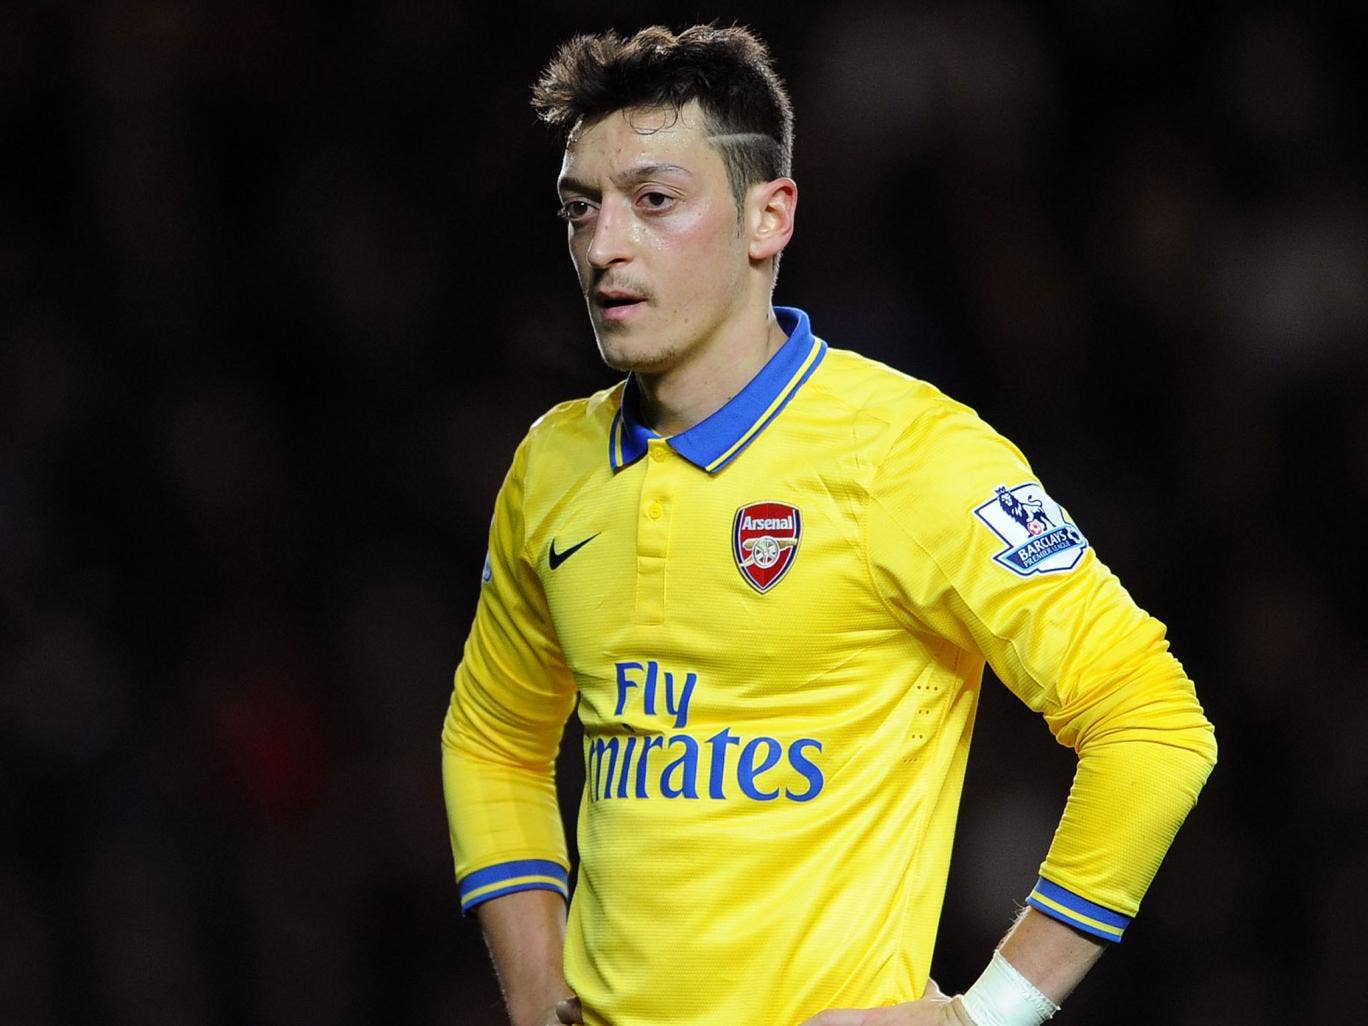 Mesut Ozil has struggled for Arsenal in recent matches